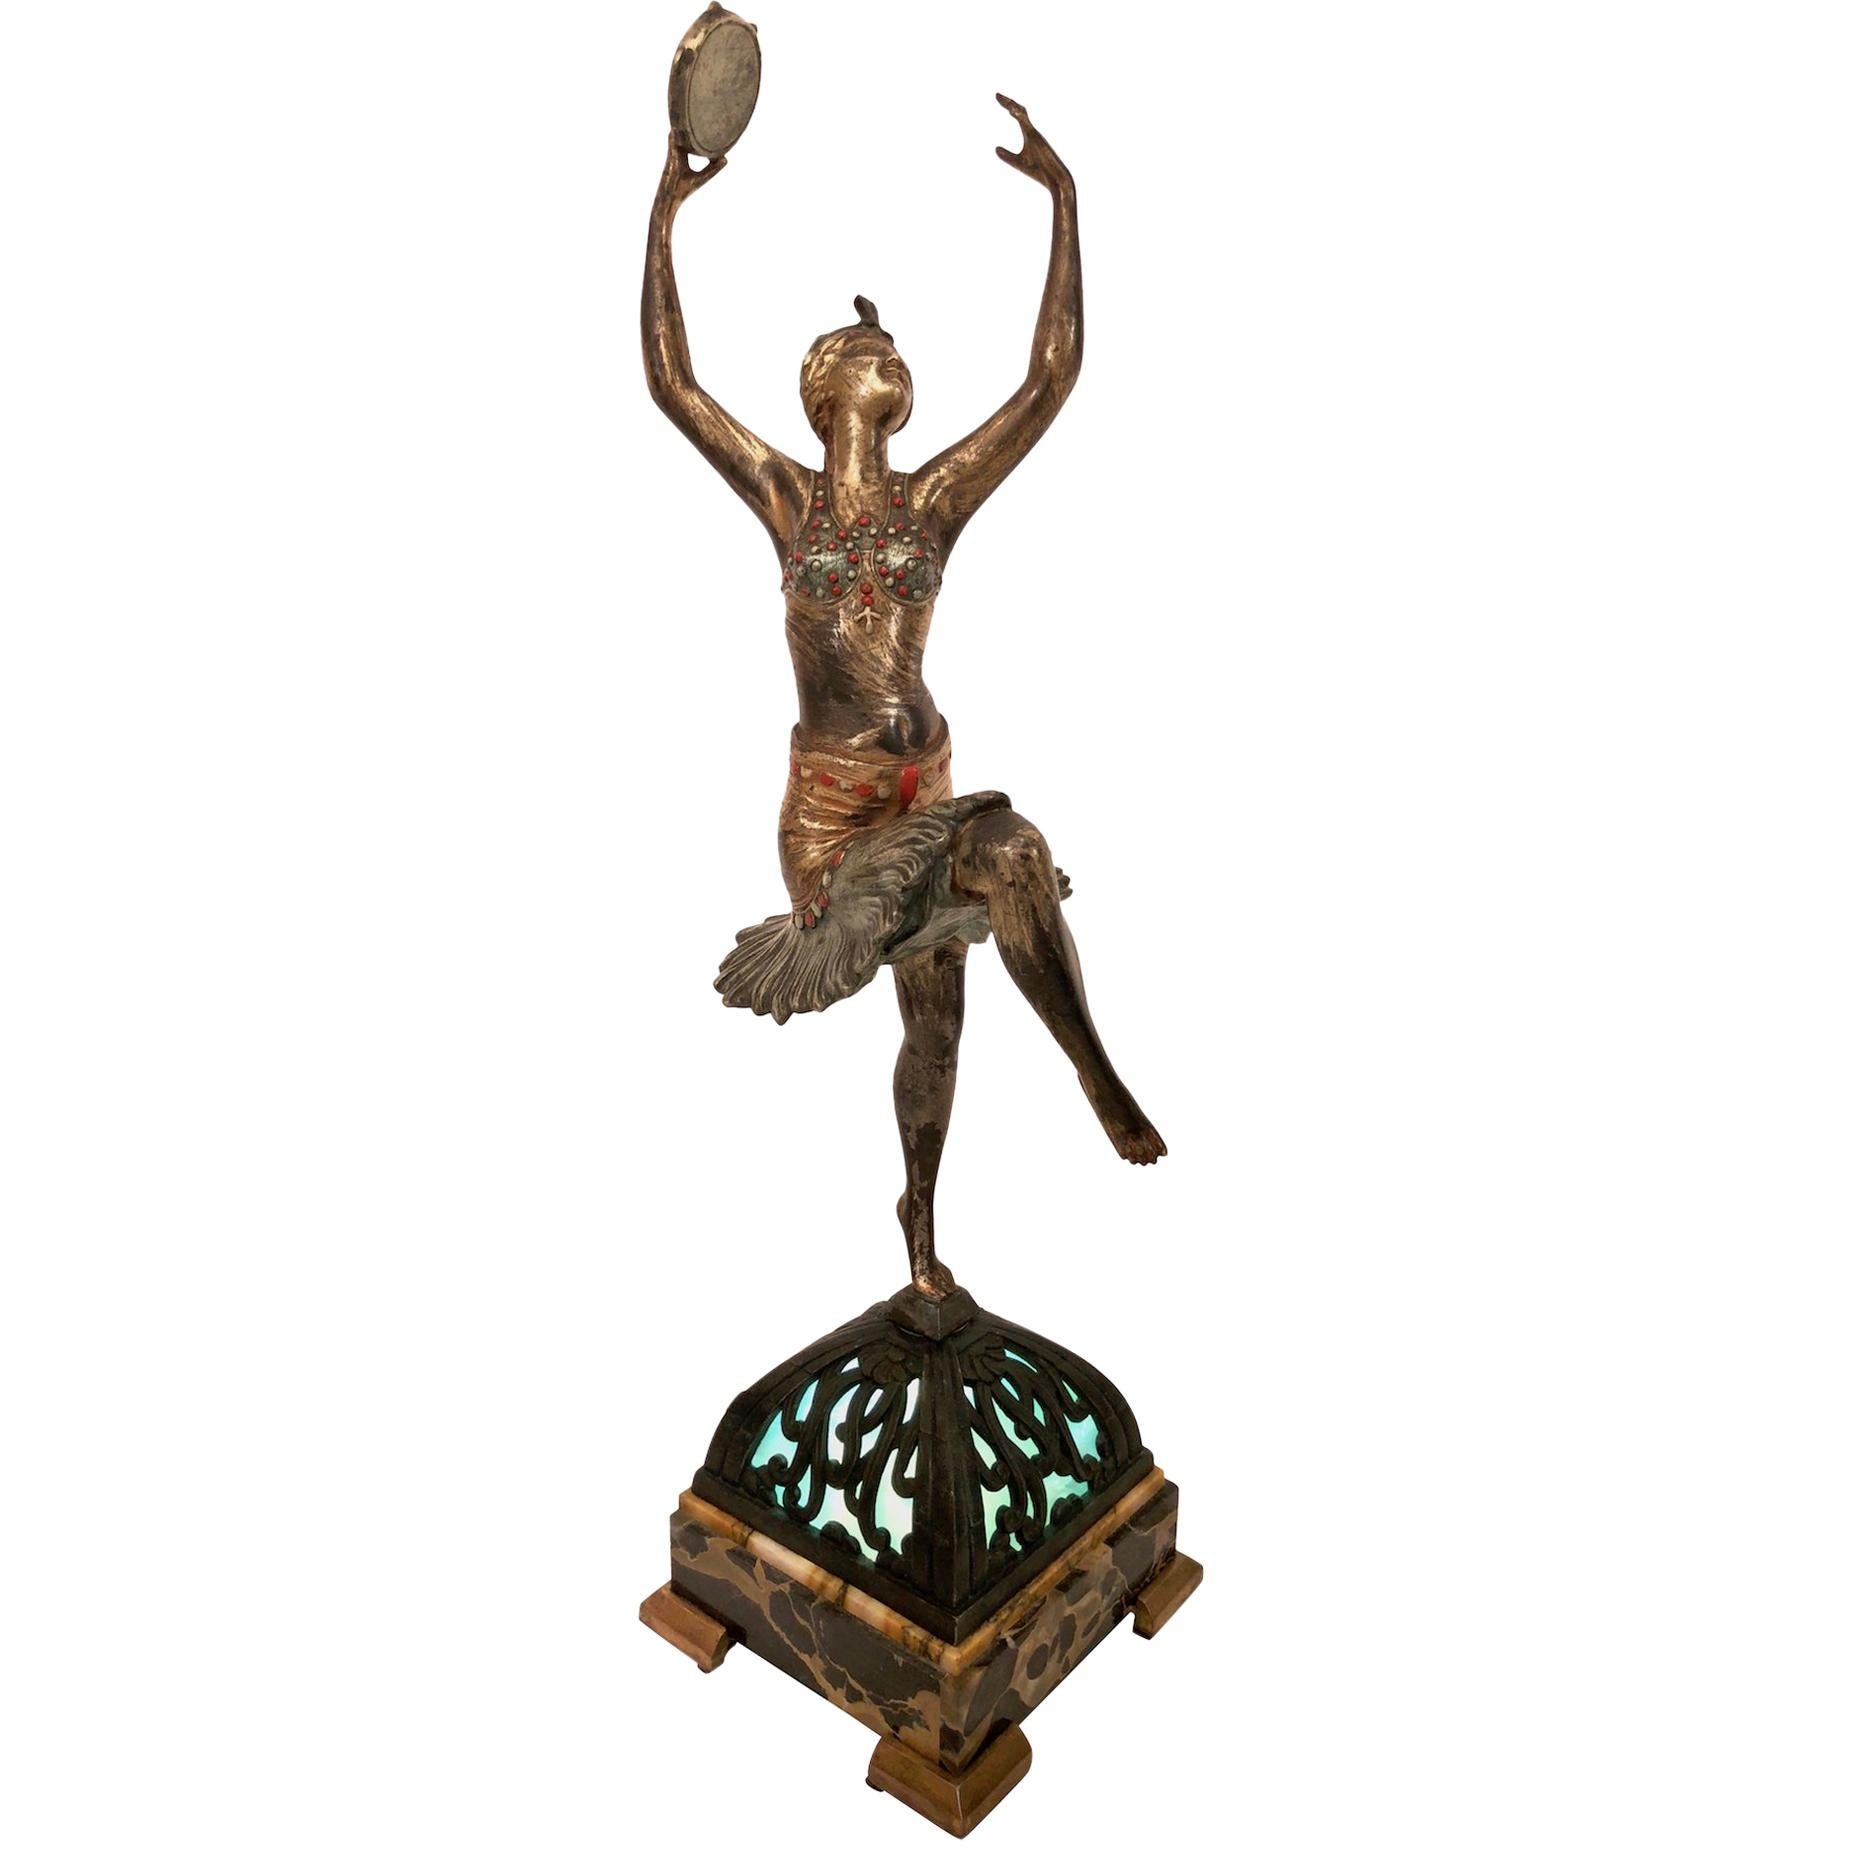 Table Lamp, the Tambourine Dancer, Sculpture in Spelter, Art Deco, France, 1930s